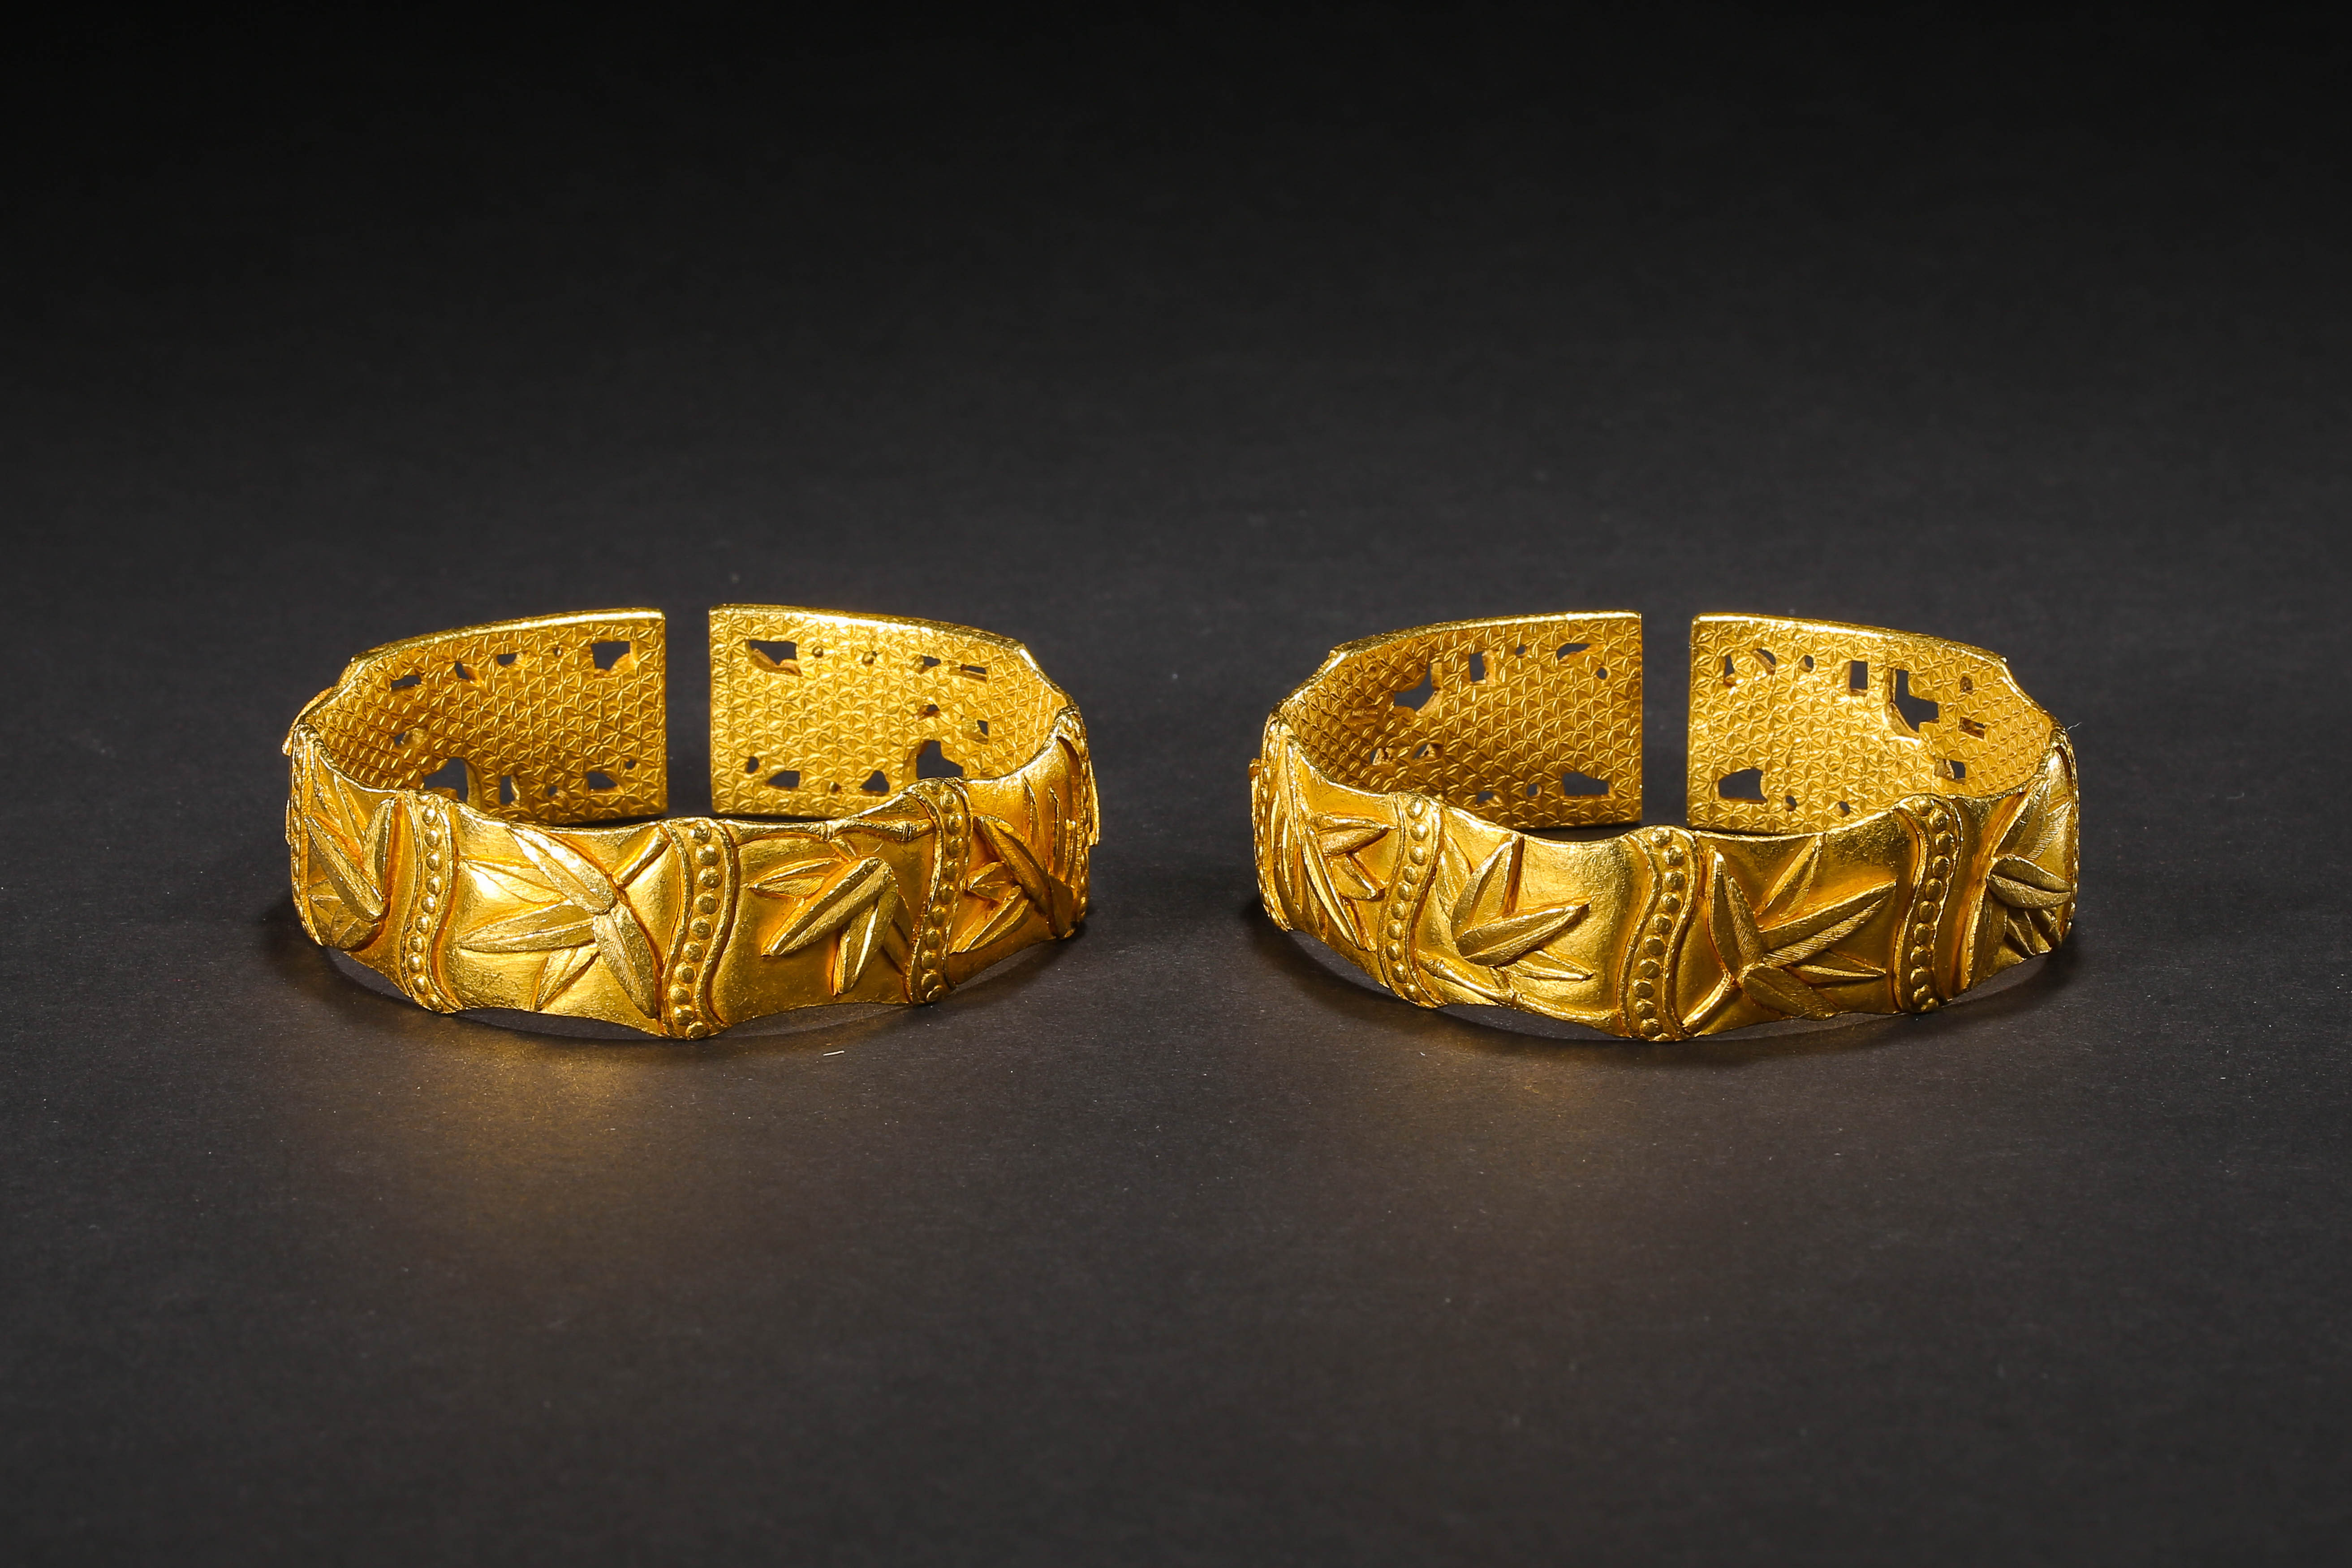 A PAIR OF PURE GOLD BRACELETS, QING DYNASTY, CHINA - Image 3 of 11